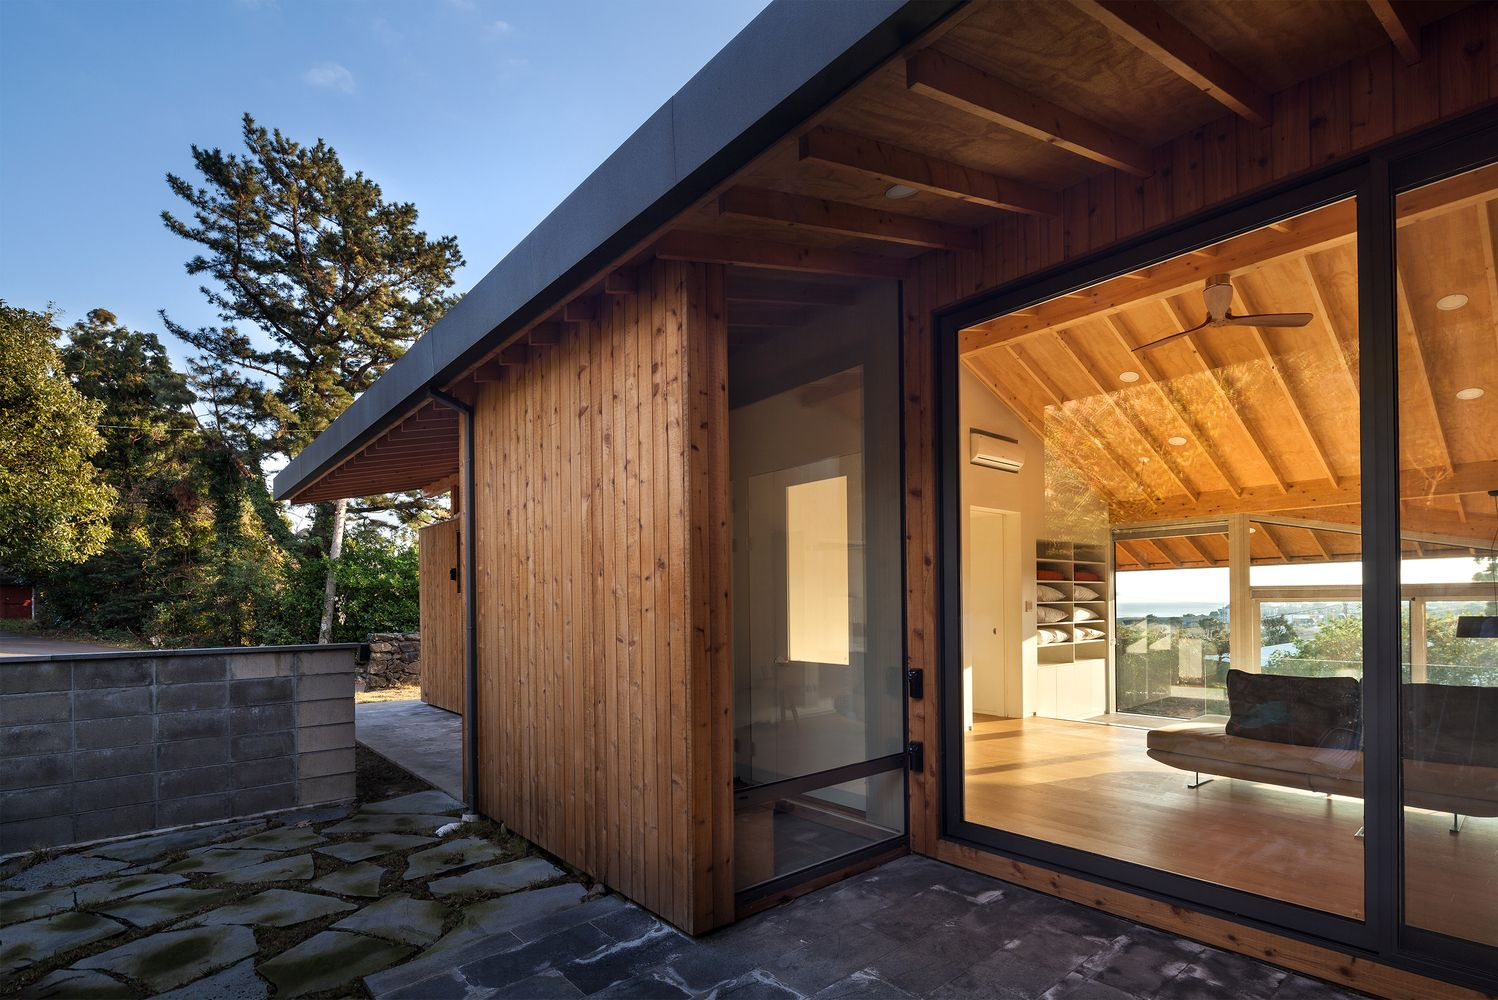 Gallery of Tosan-ri Guest House / guga Urban Architecture